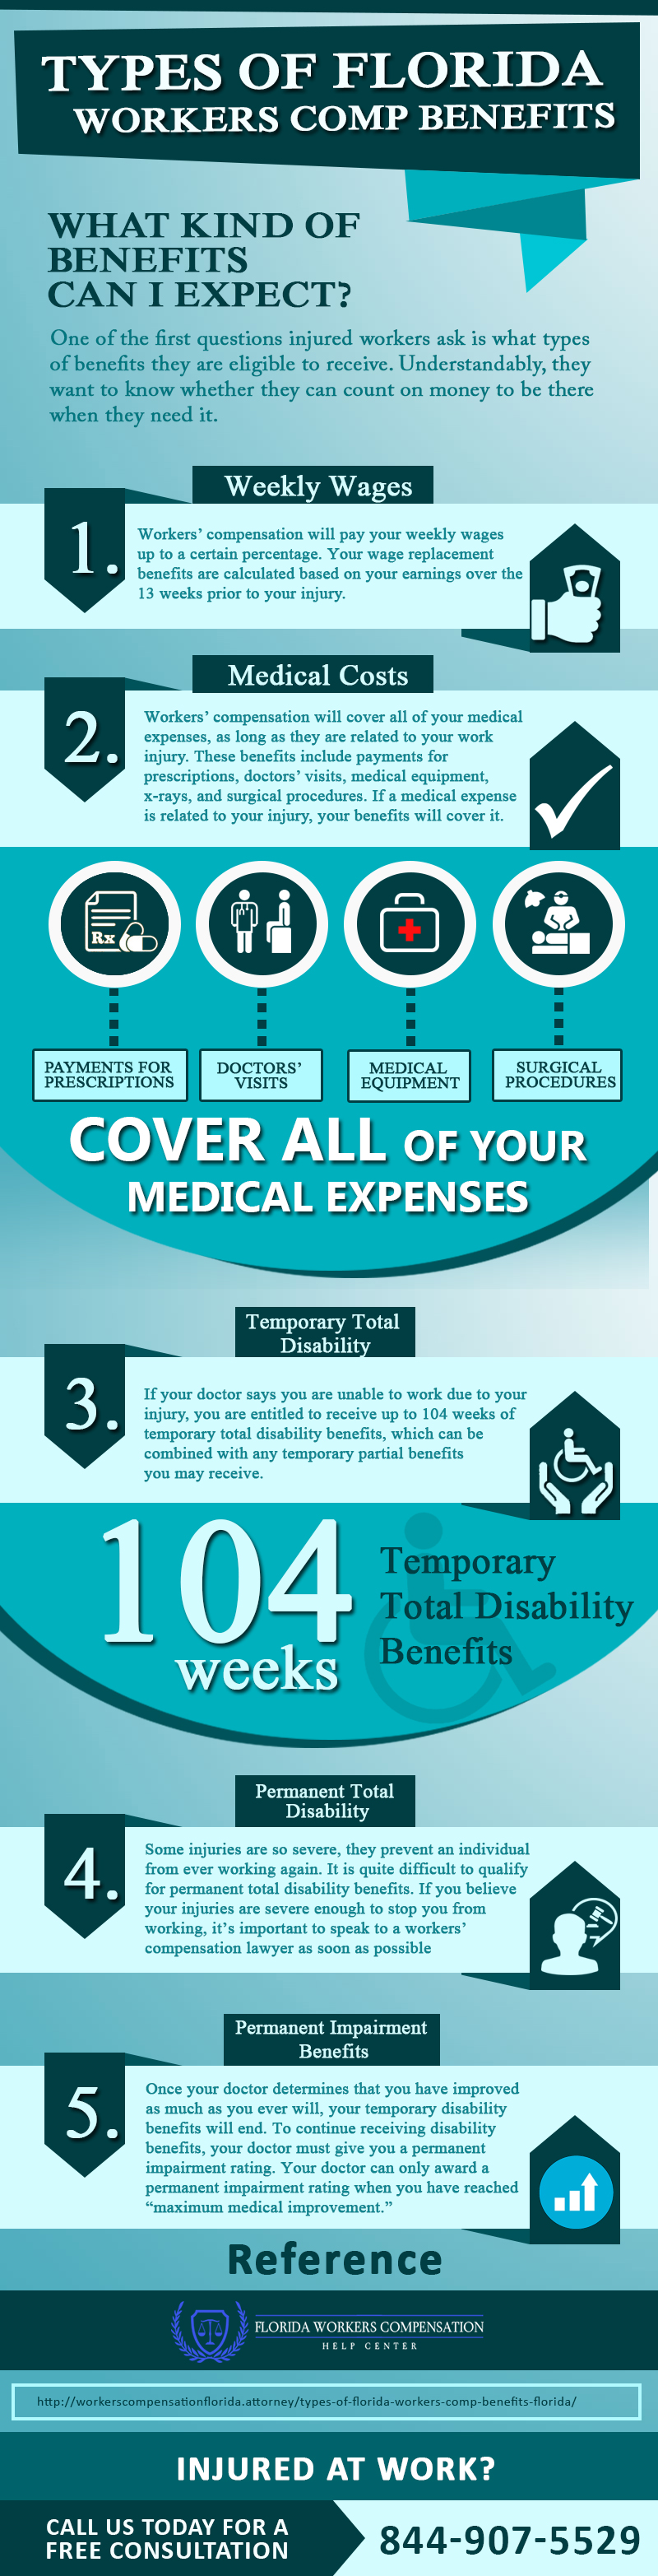 Pin by Florida Workers' Compensation Help Center on Types